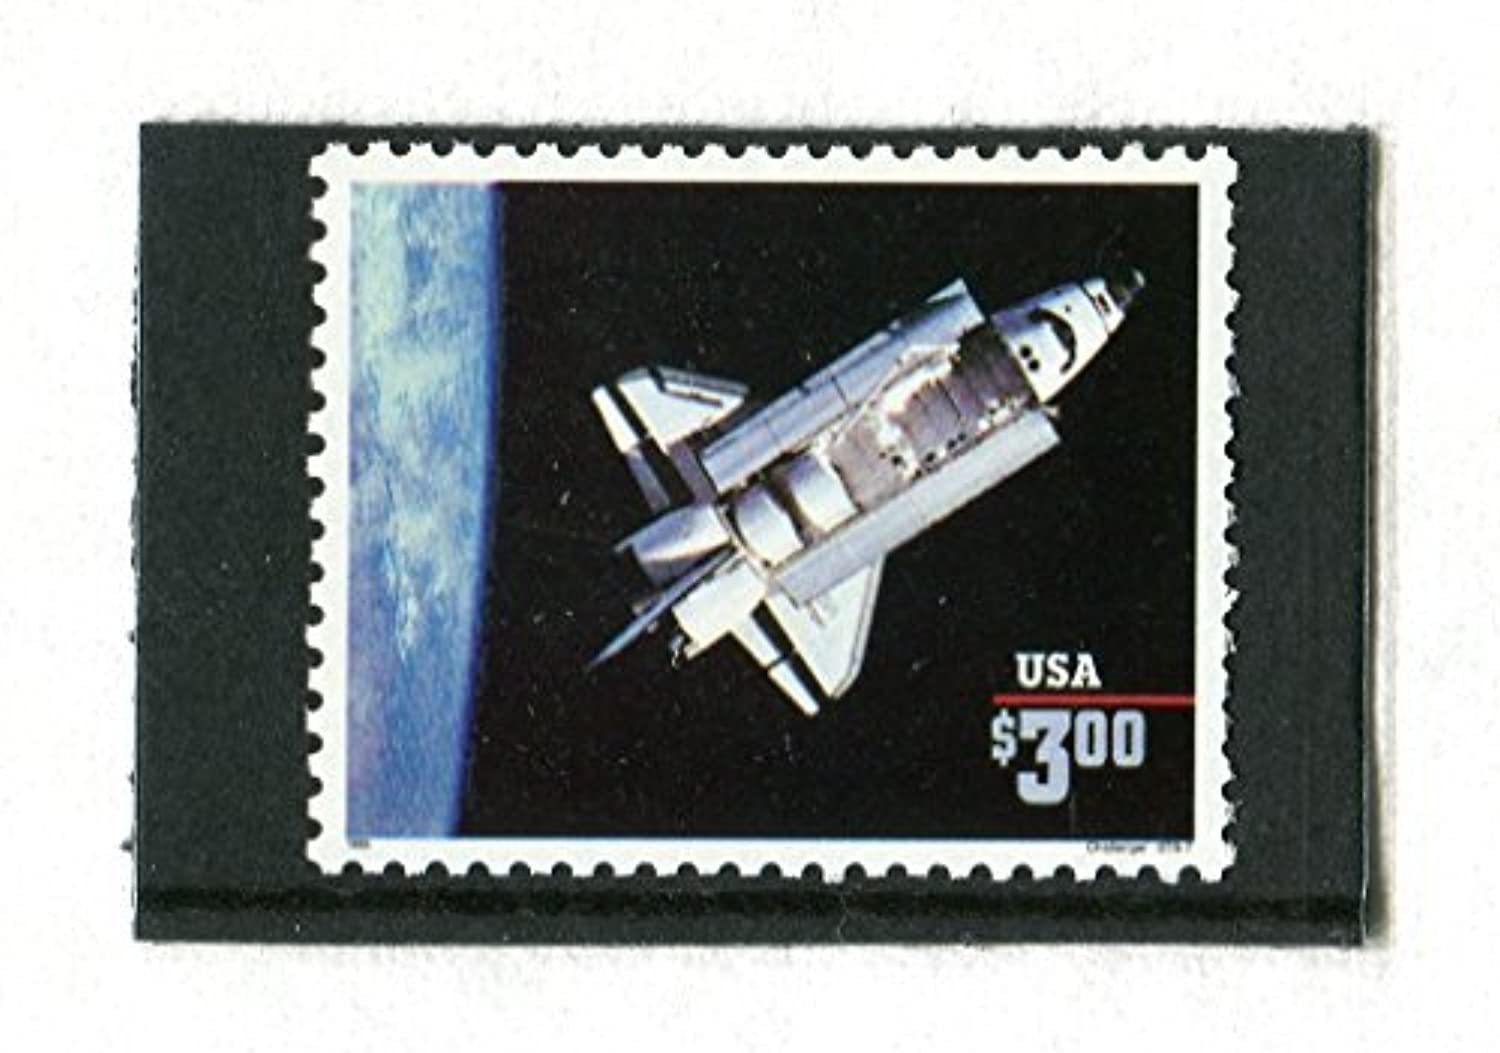 US Postage Stamp, Single  3.00, Space Shuttle, 1995, S 2544, MNH by  USPS, US Post Office Dept